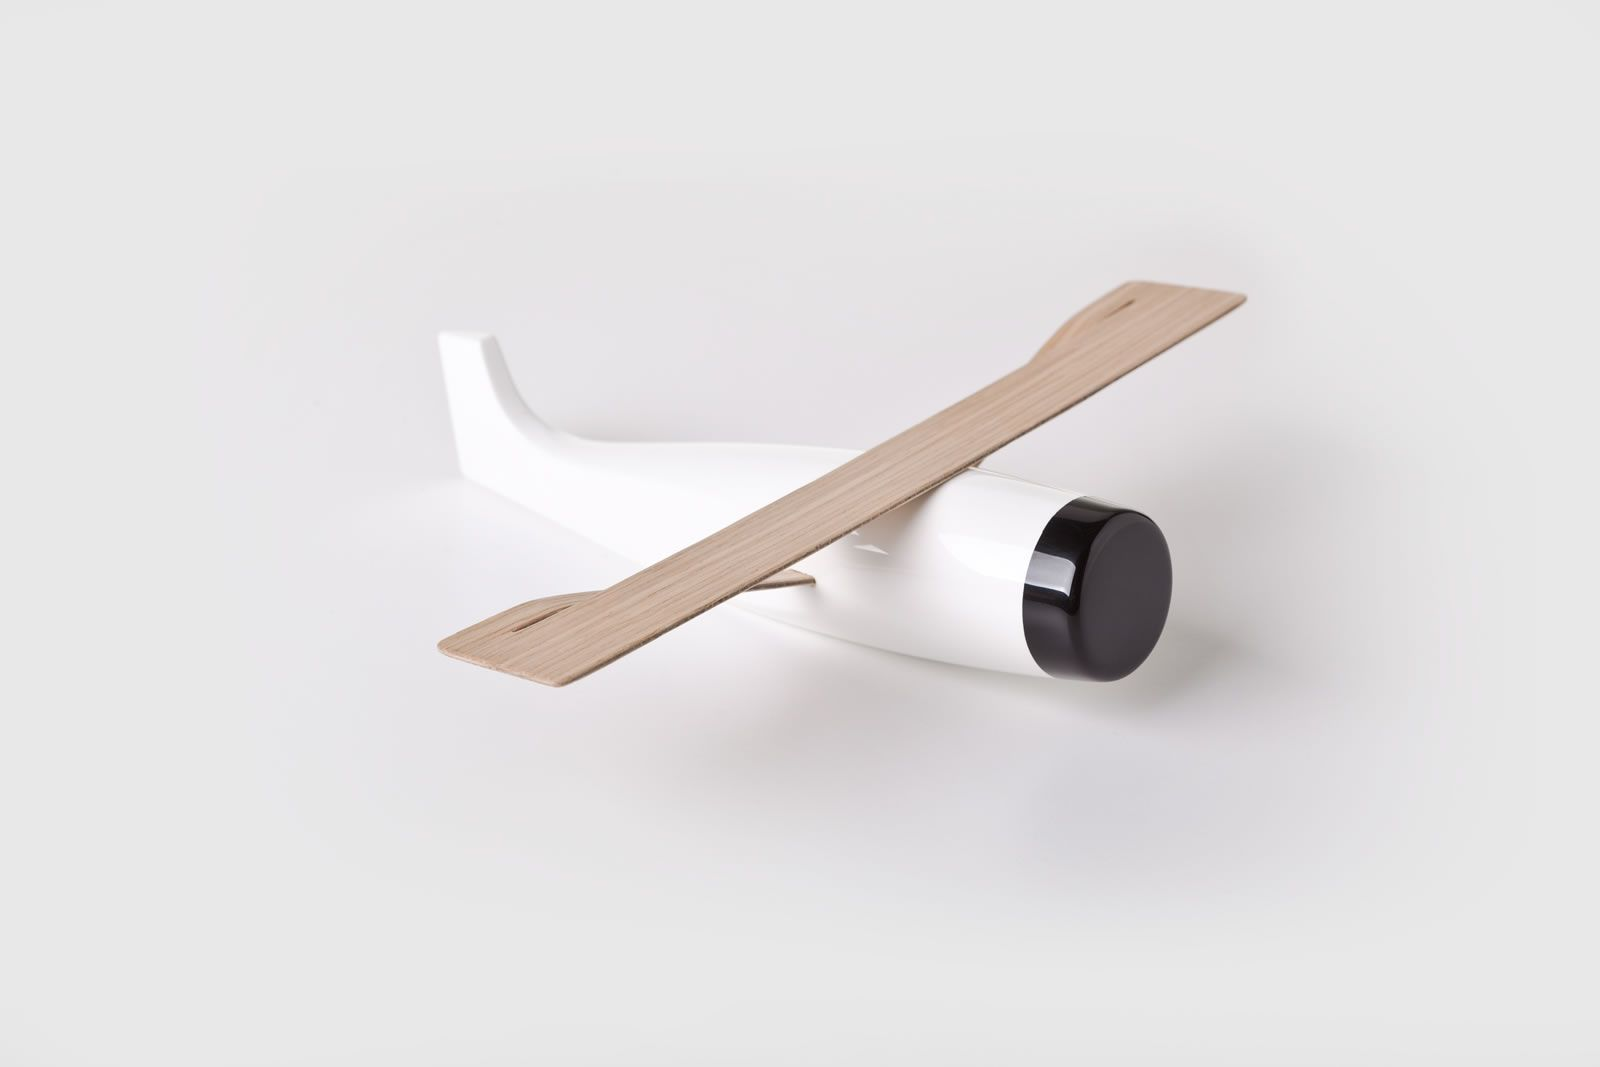 Woo Aeroplane by Roman Vrtiška & Vladimír Žák The solid wooden sculptures represent an airplane, a bulldozer, and a sailboat, each symbolizing air, earth, and water, respectively. The pieces are feature both naturally finished and colorful veneered accents, available in red or black. WOO Toys made their first big public appearance at Prague earlier this October at Designblock 2014.